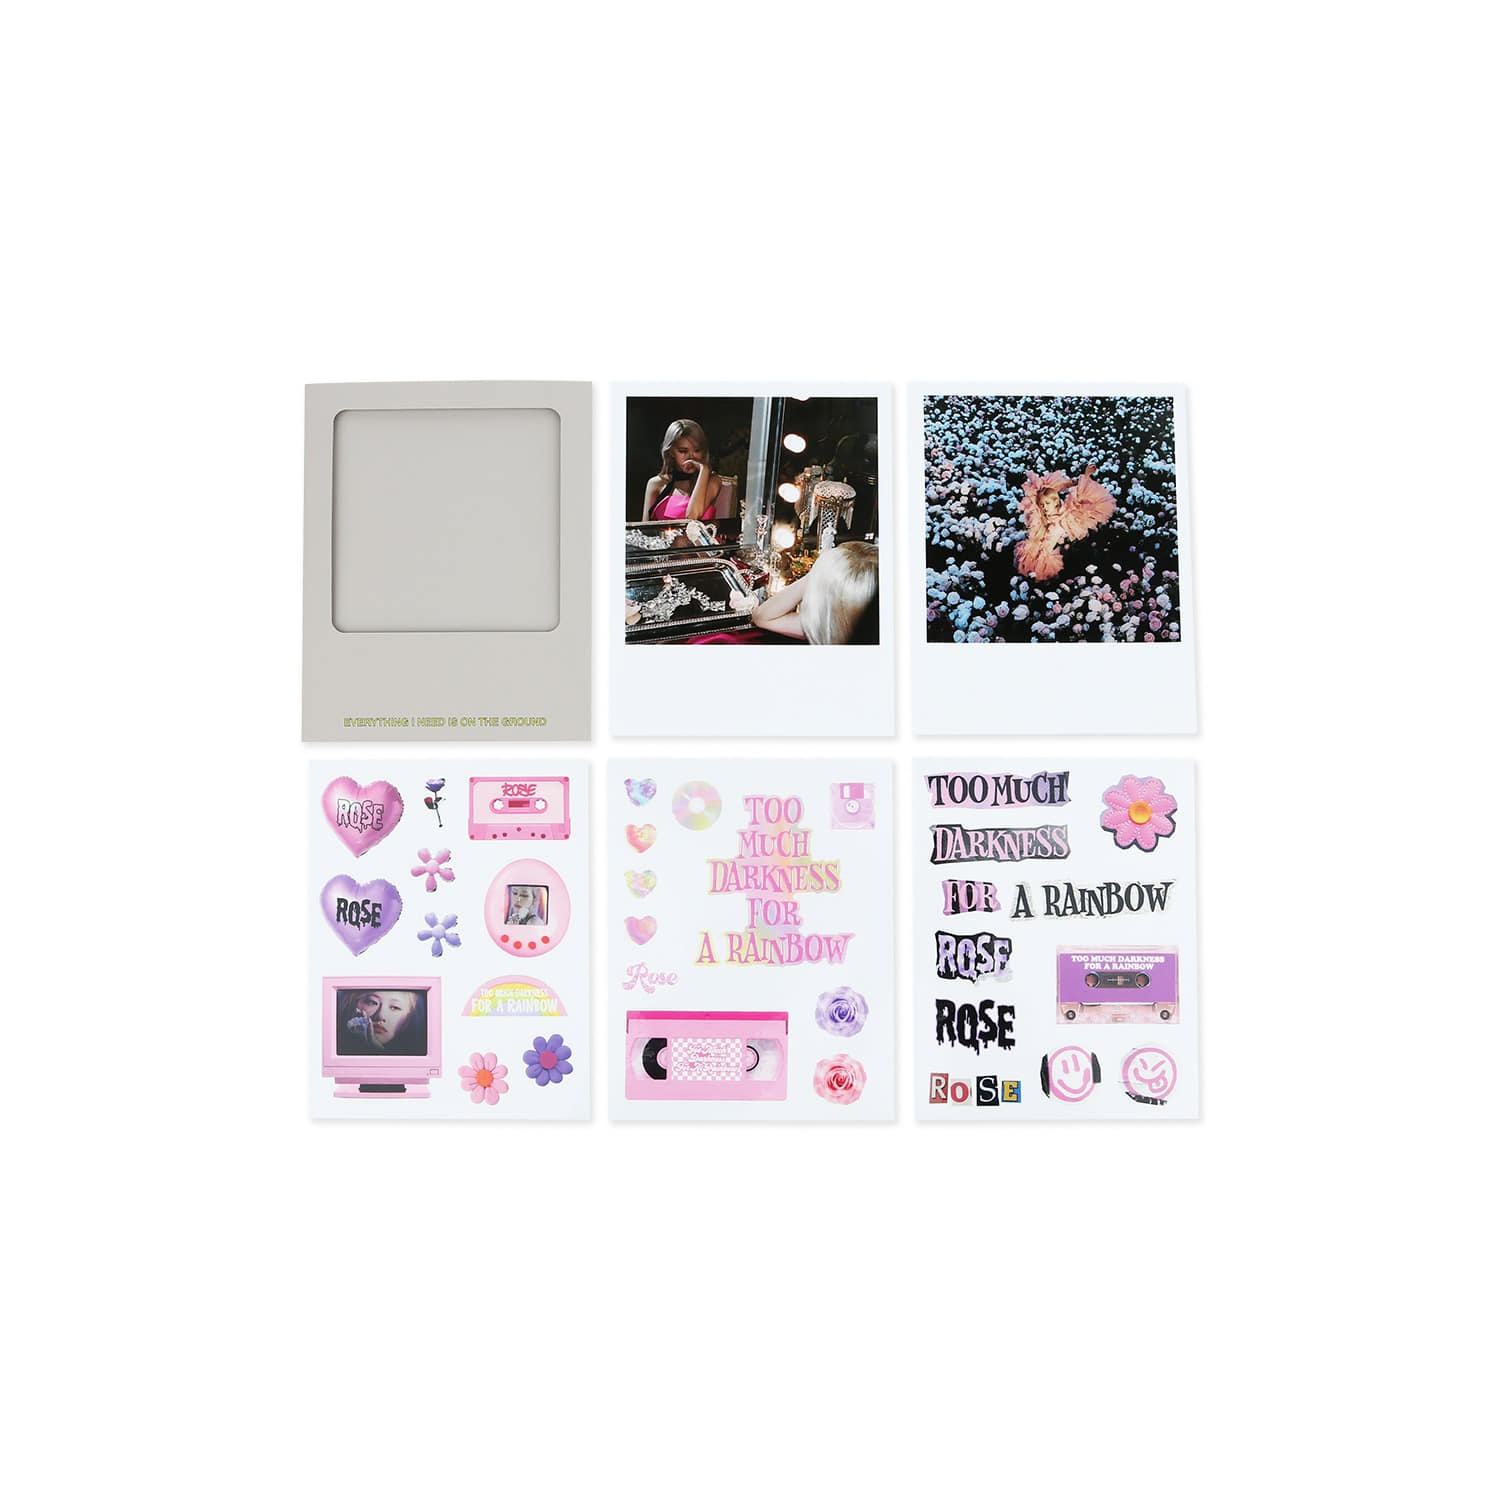 [-R-] ROSÉ PHOTO CARD + STICKER SET